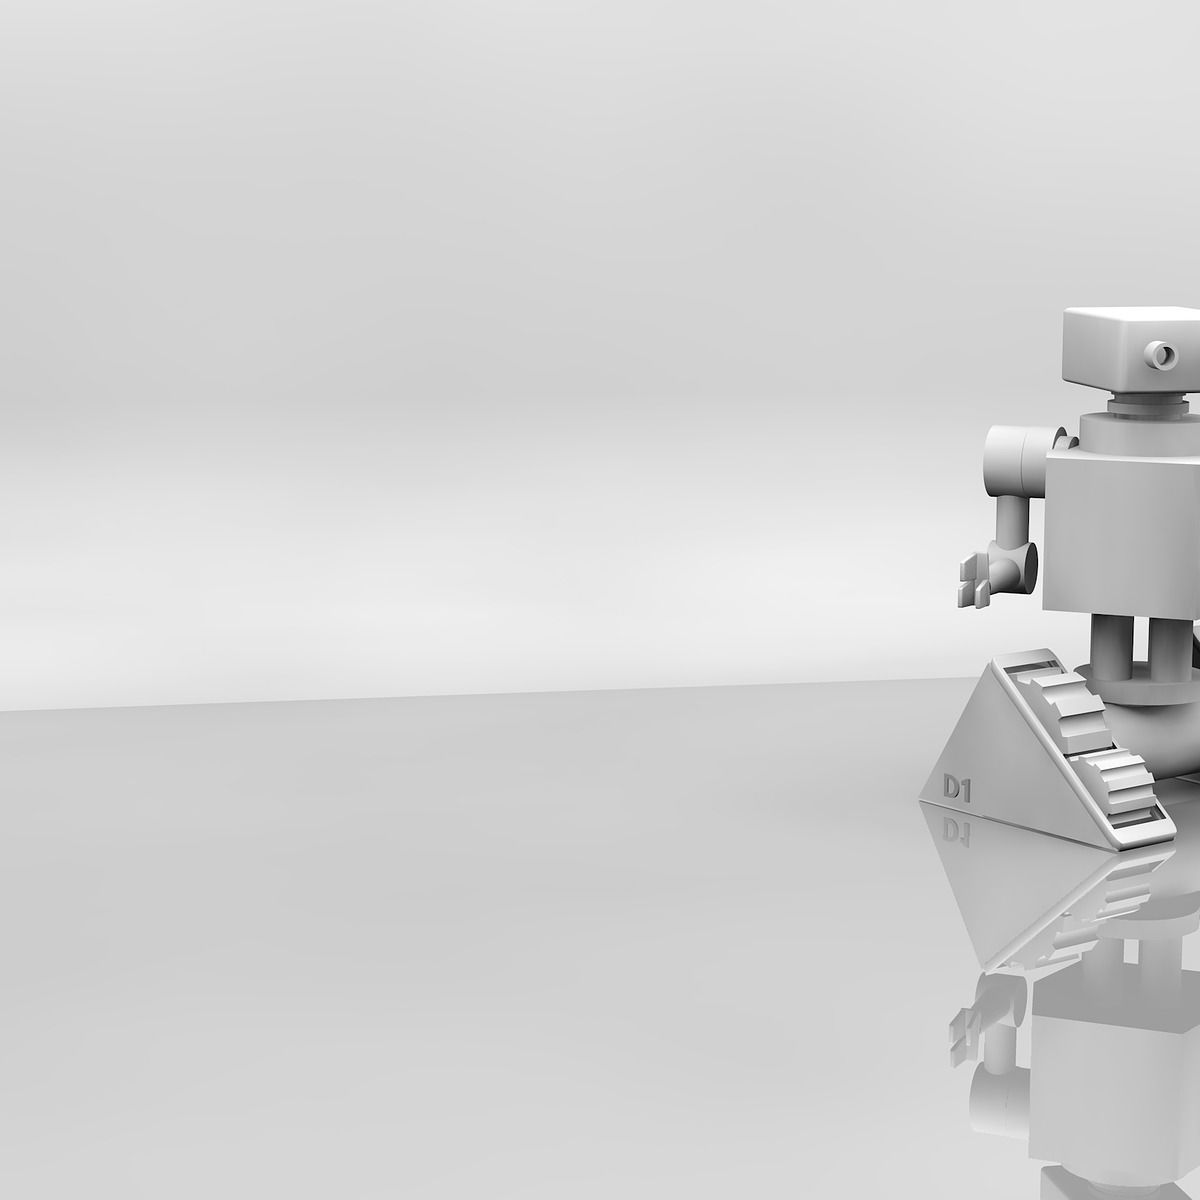 Android, robot, 3d, computer graphic, grey, cyberworld